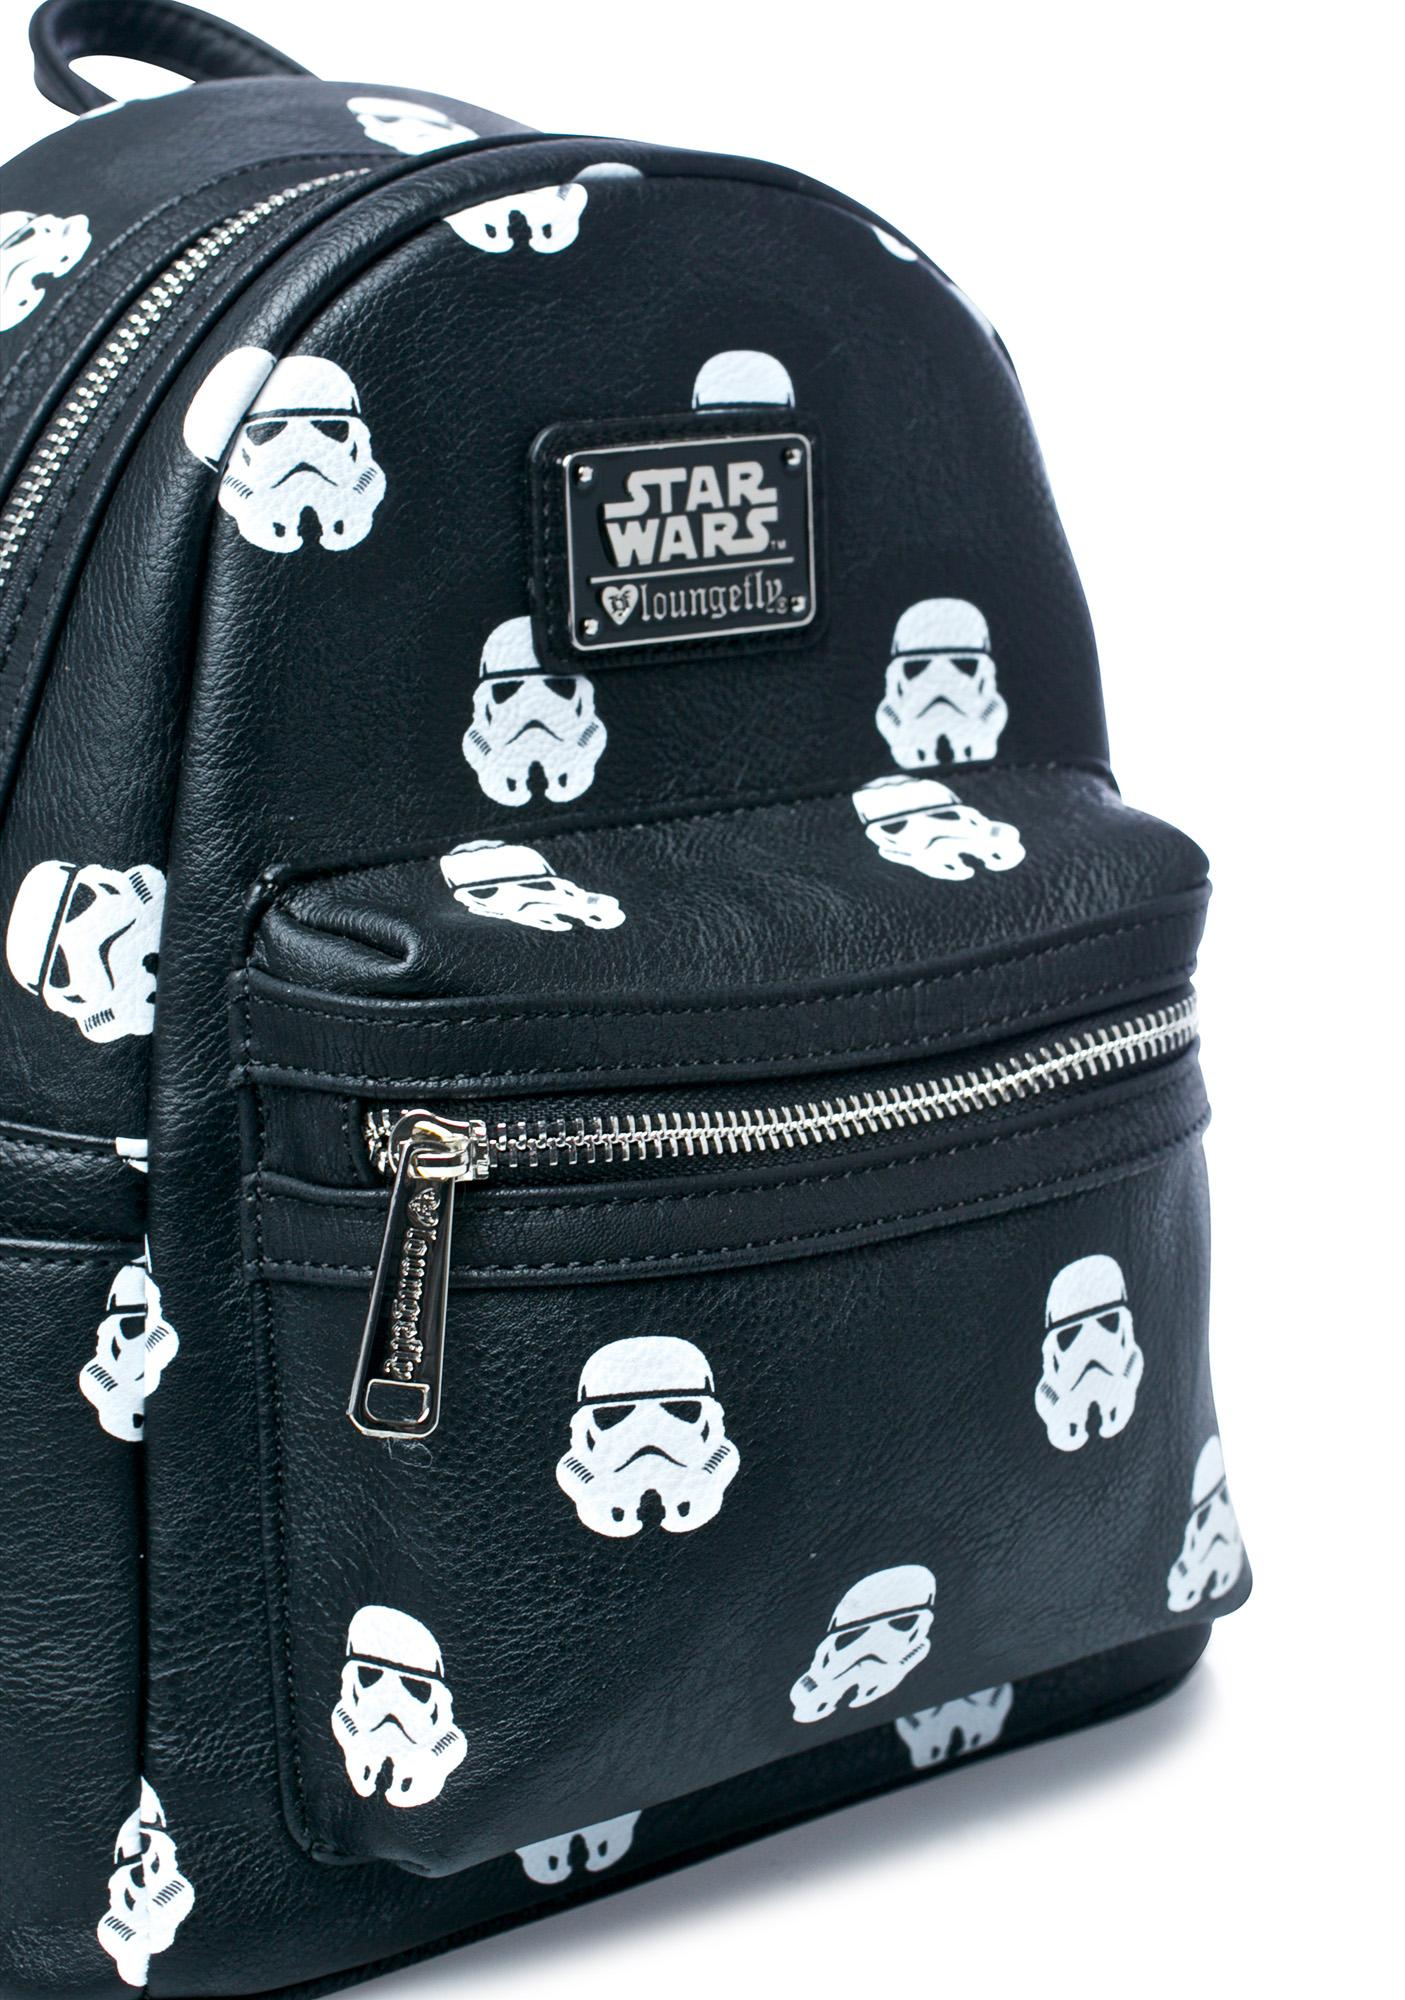 Loungefly Storm Troopers Backpack